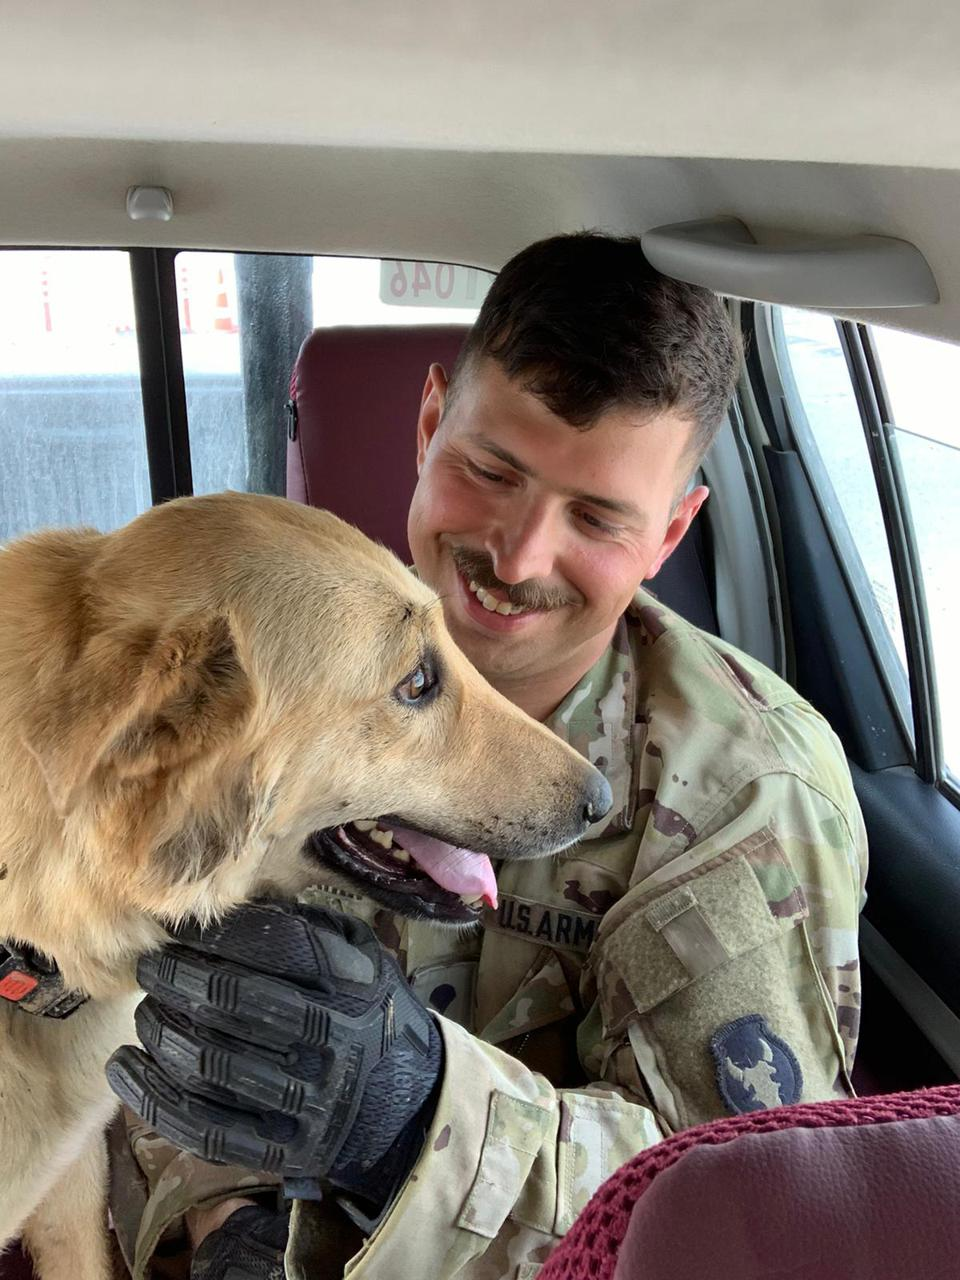 pet, military pets, dog, dog travel, traveling during Covid